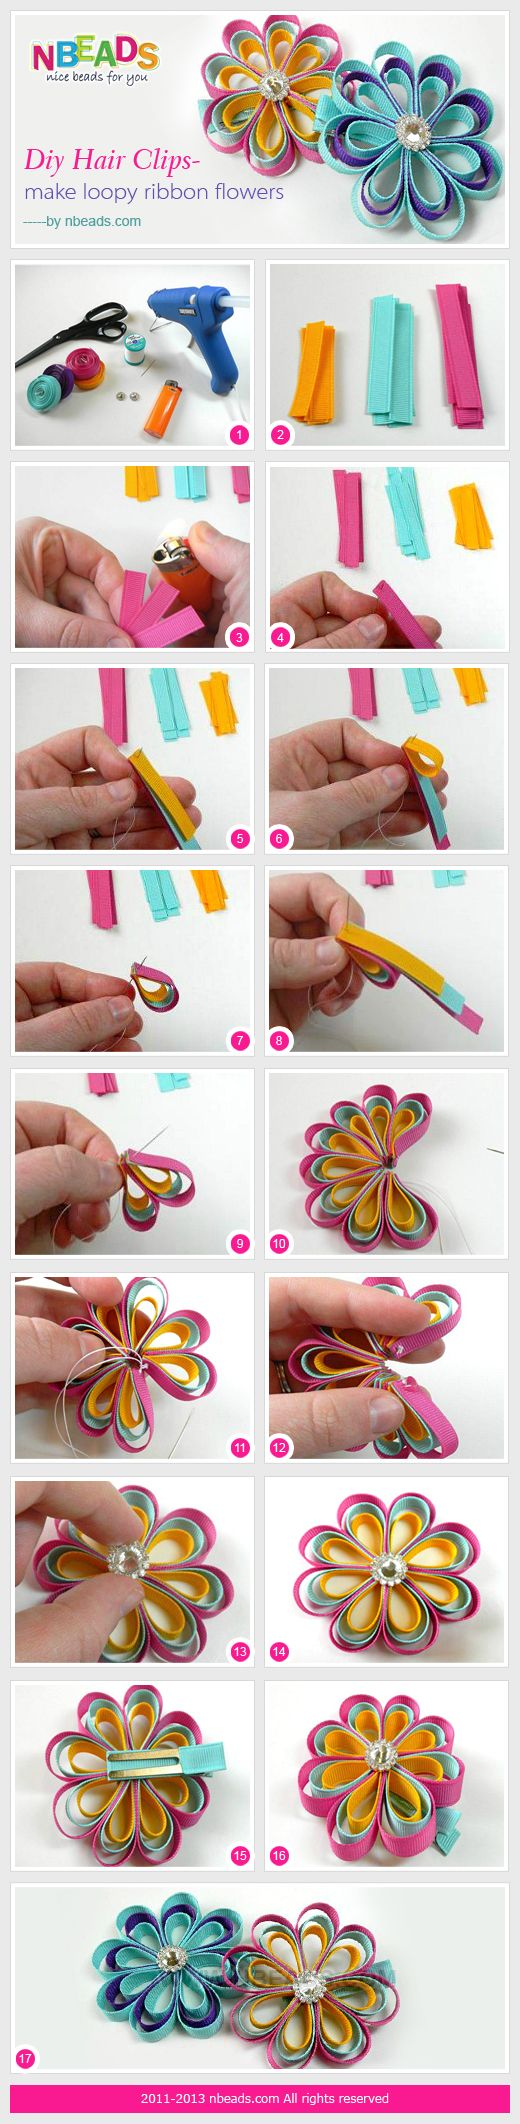 DIY Hair Clips - Make Loopy Ribbon Flowers